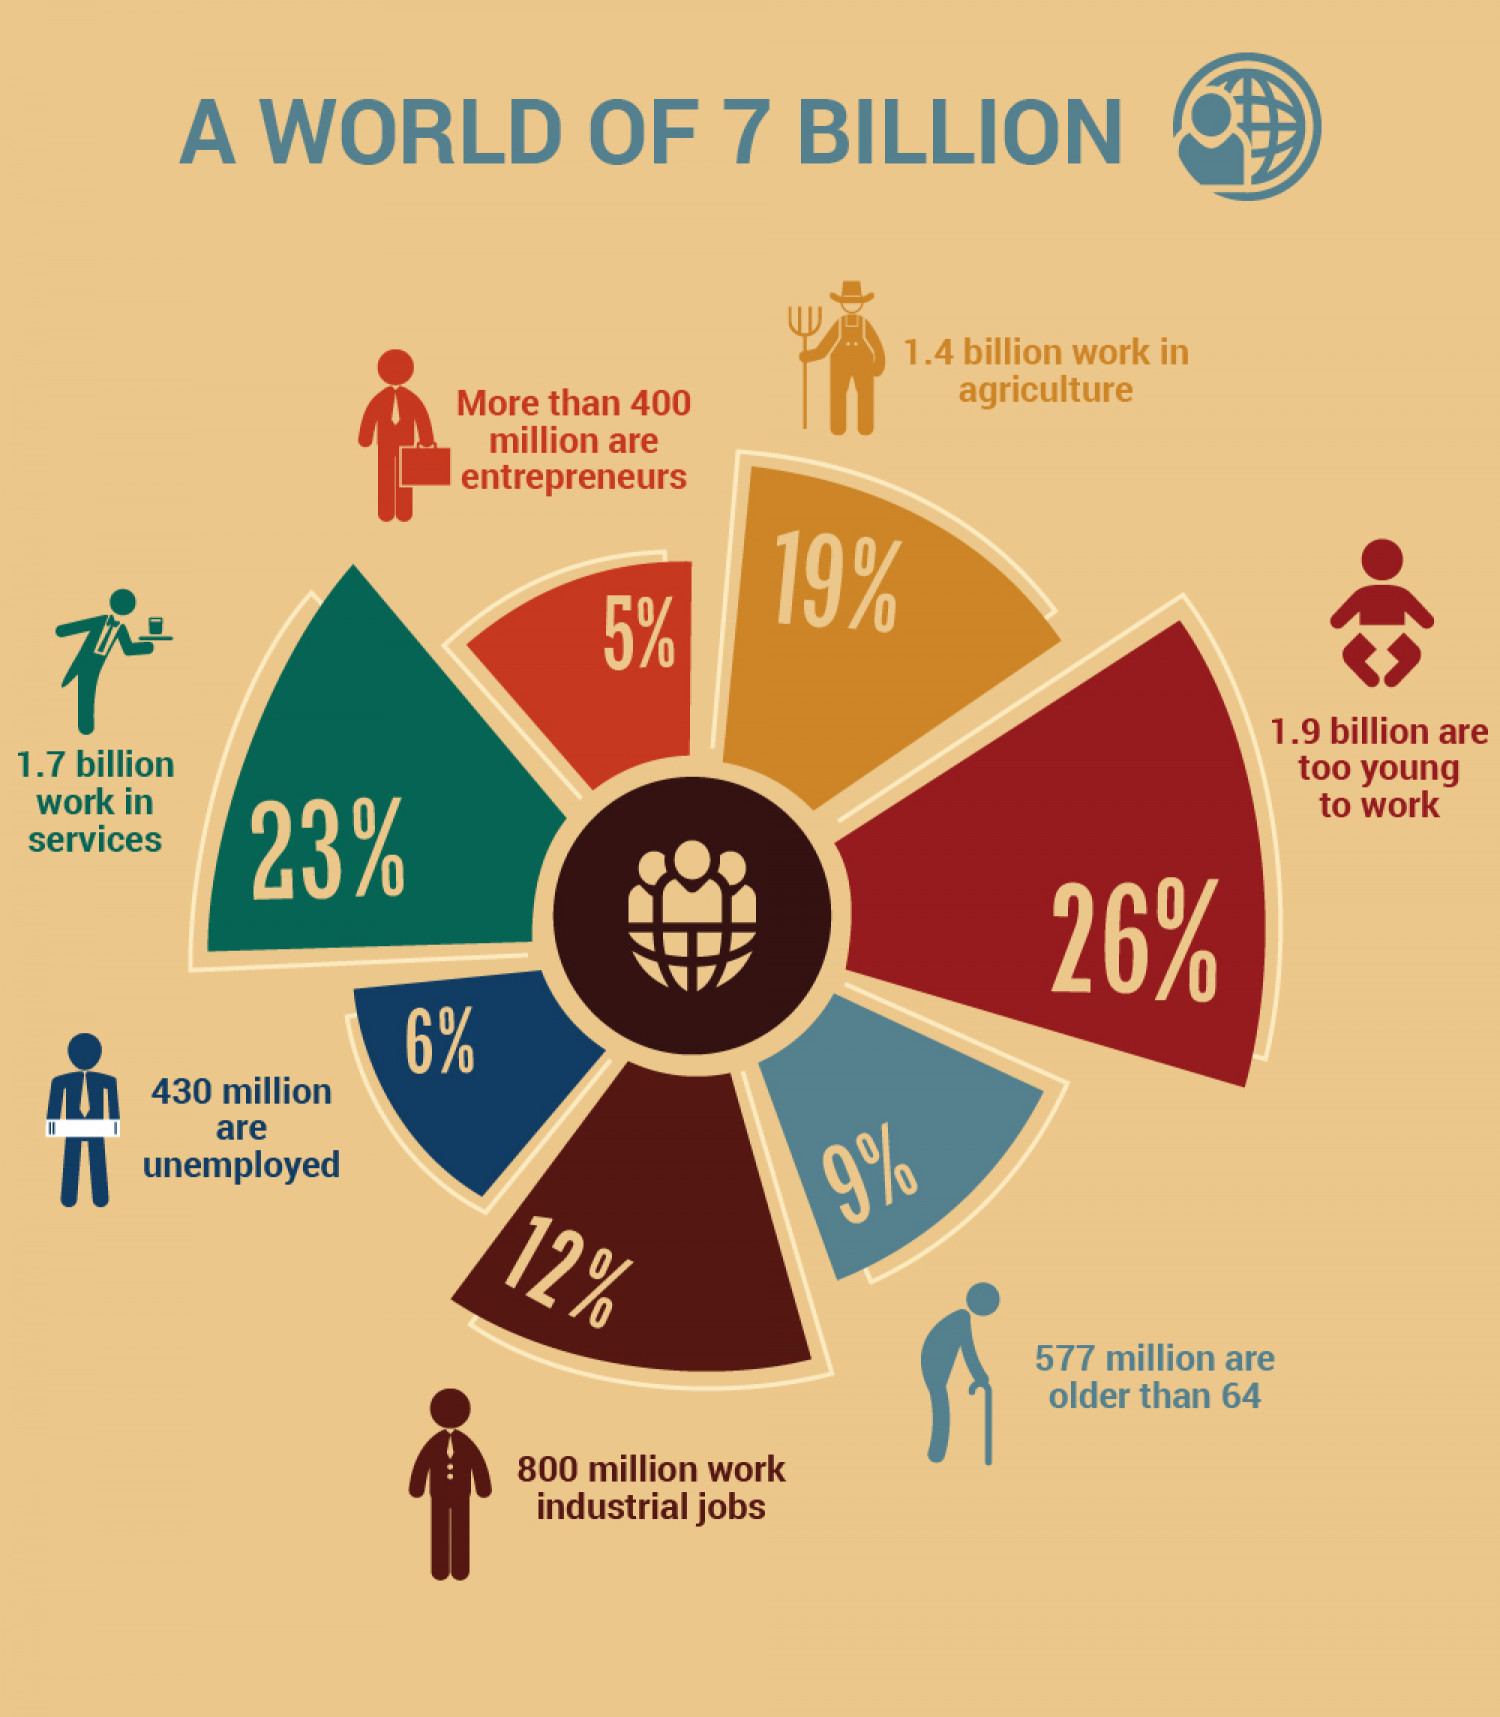 Activities of 7 Billion People in the World Infographic